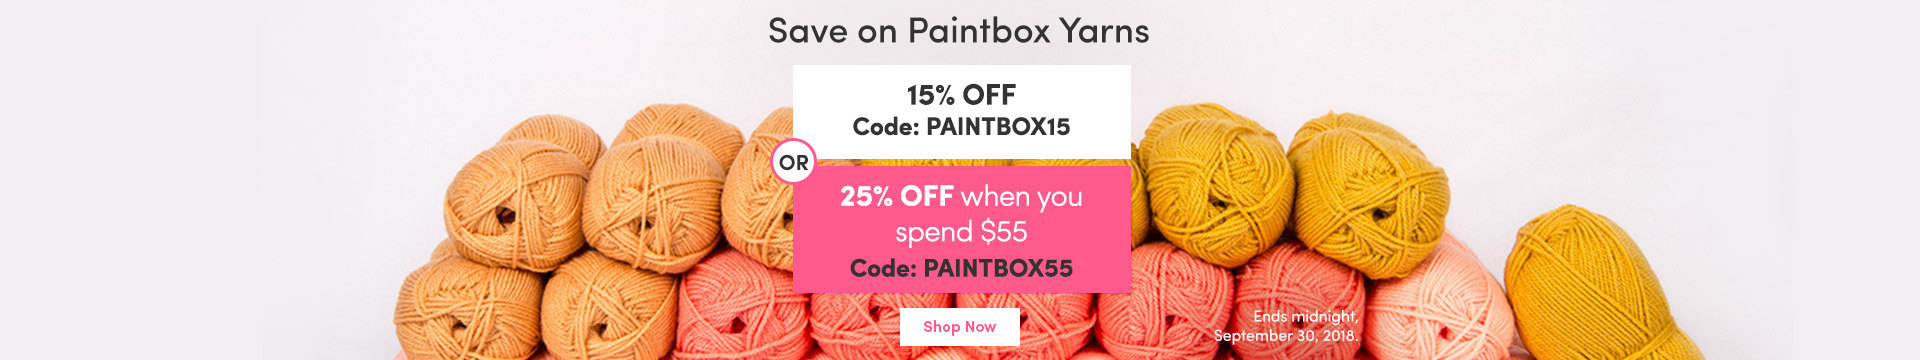 LC Marketing NA 25% off Paintbox Yarns